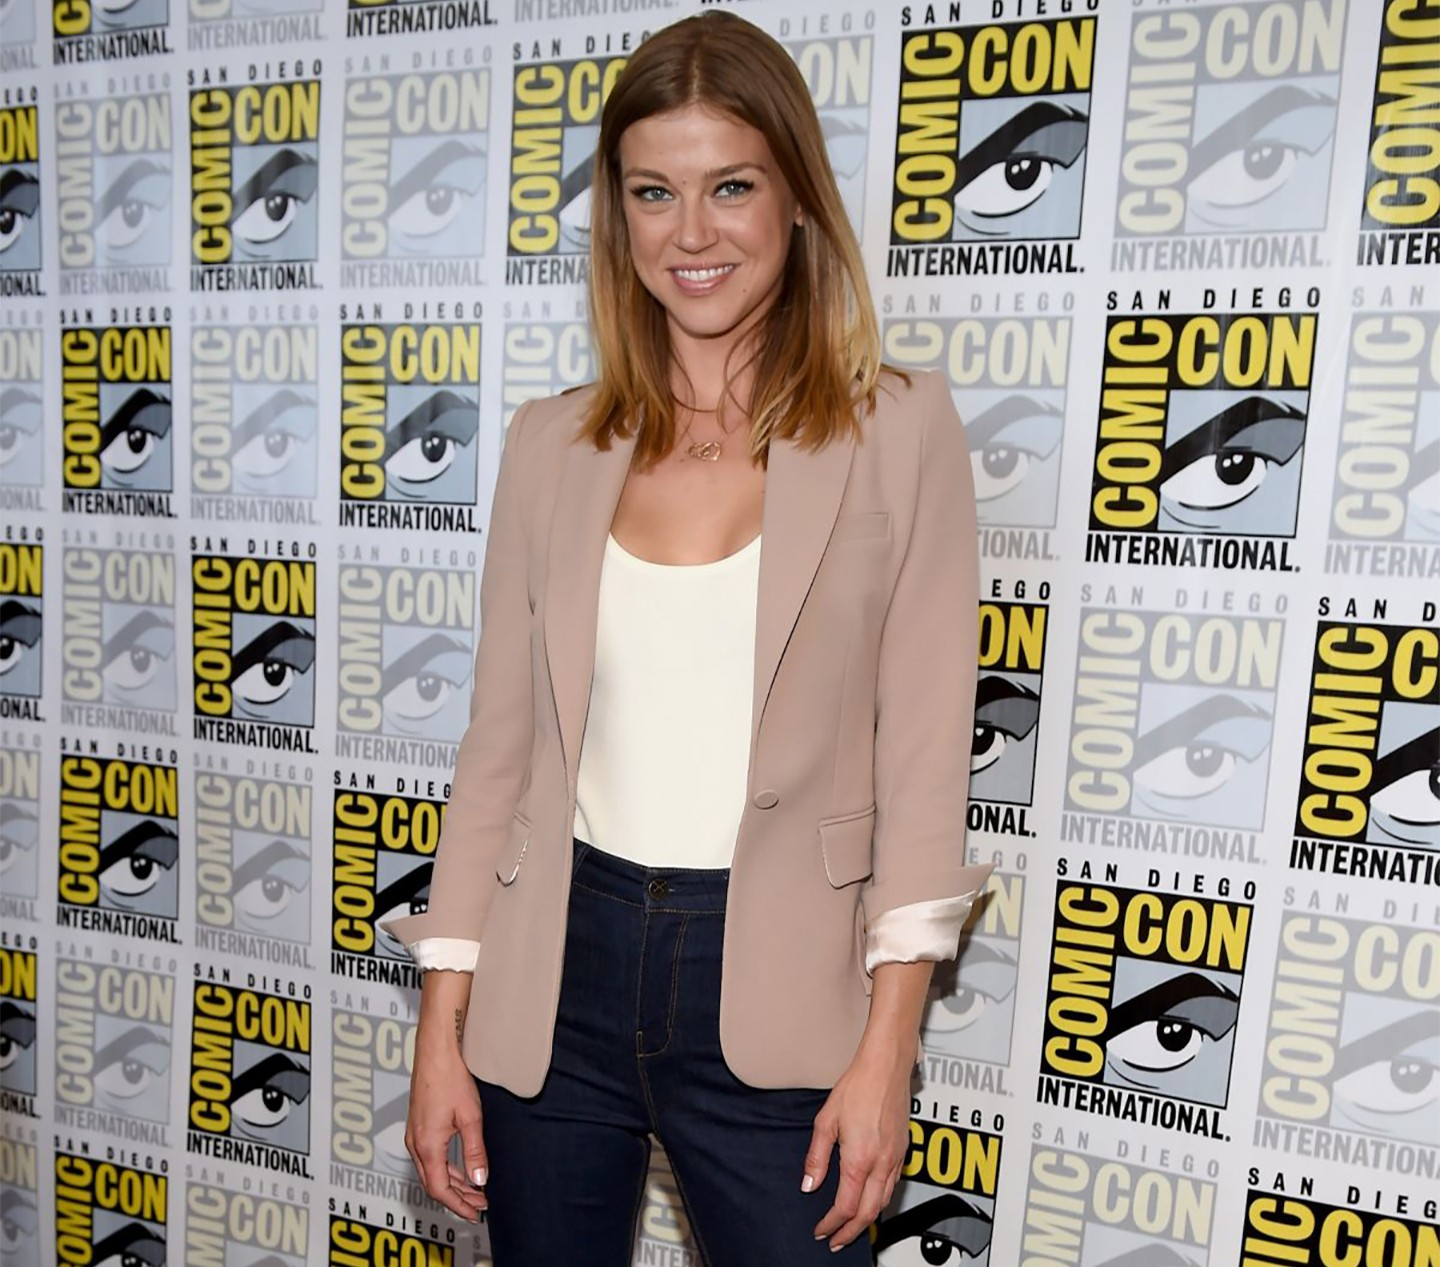 ADRIANNE PALICKI in Shell Nude Jacket at the Comic Con in San Diego